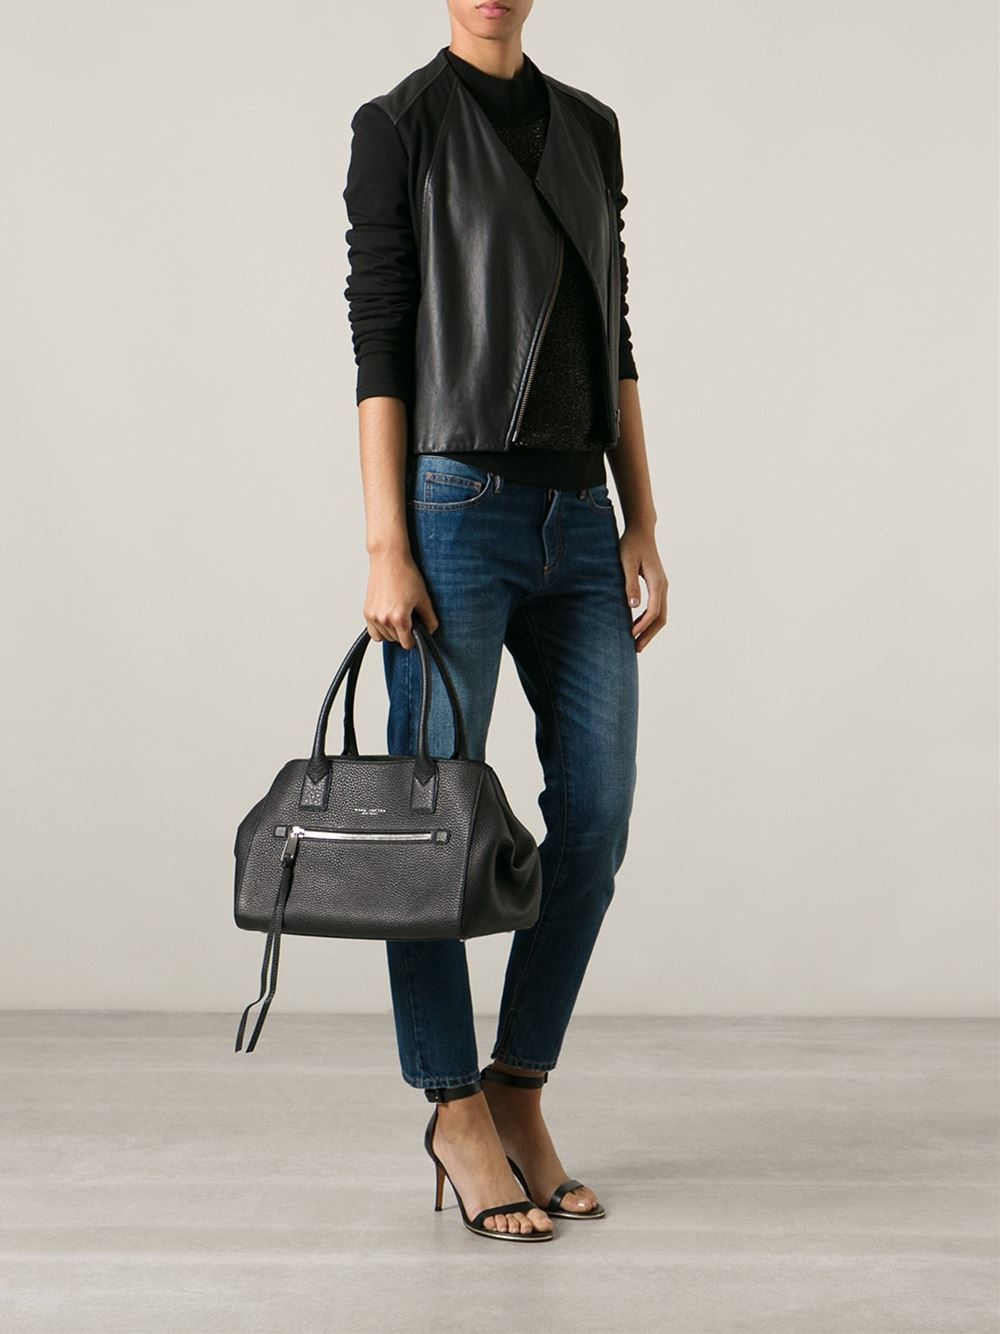 2d2566dbc0d3 Lyst - Marc Jacobs The Not So Big Apple Tote in Black